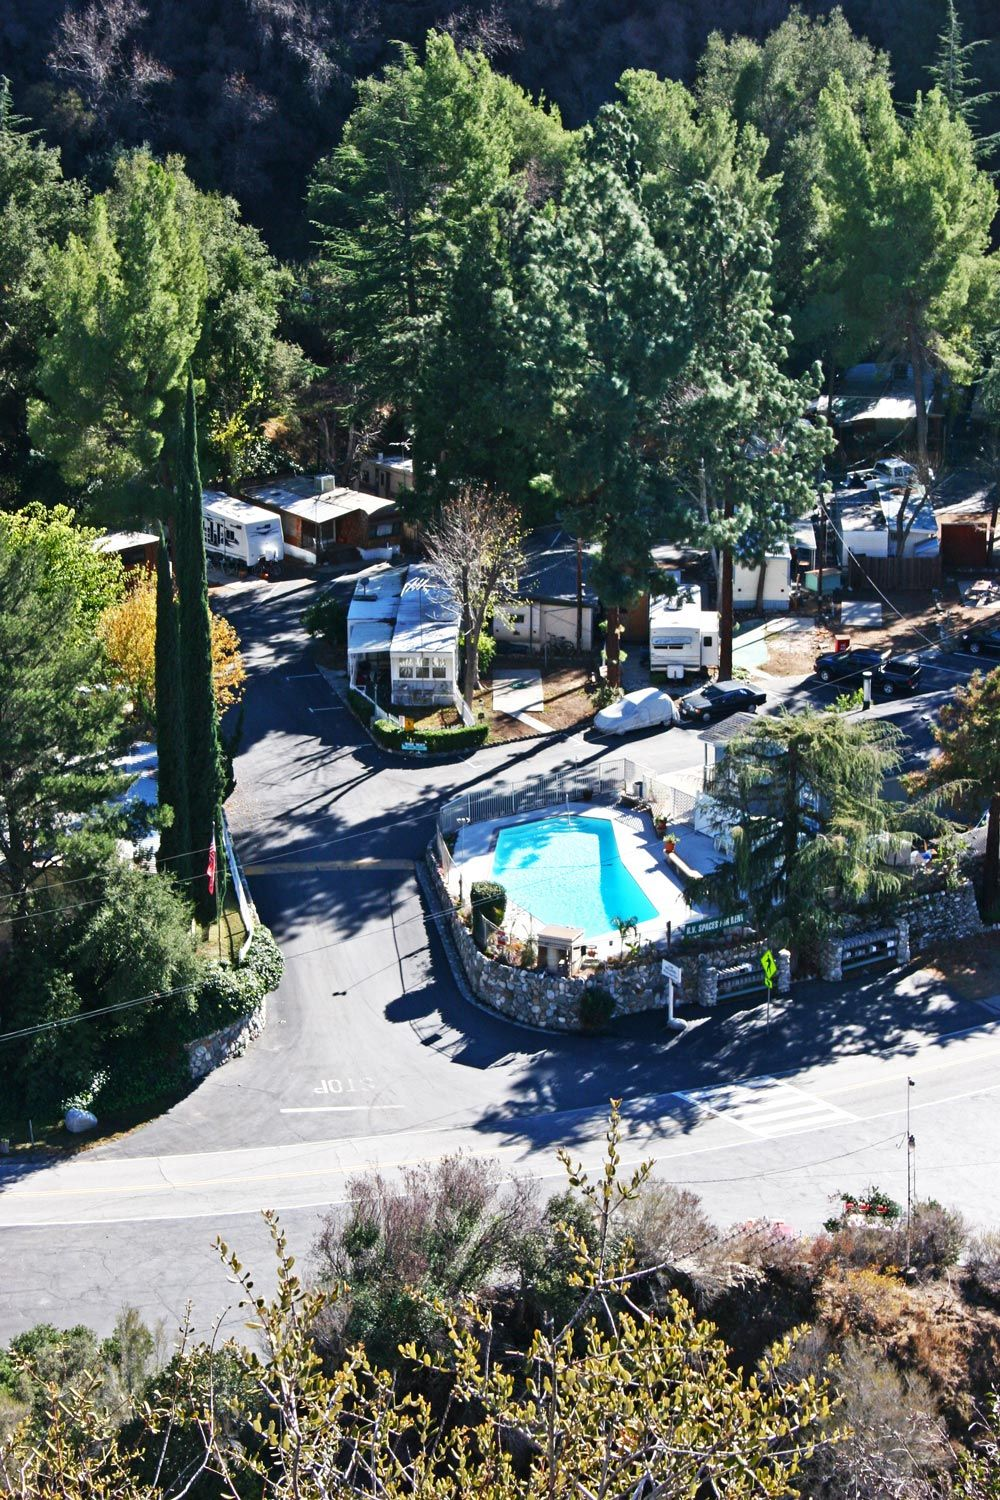 Stay at our Mobile Home Park year-round in Camp Williams Resort in Azusa, CA.